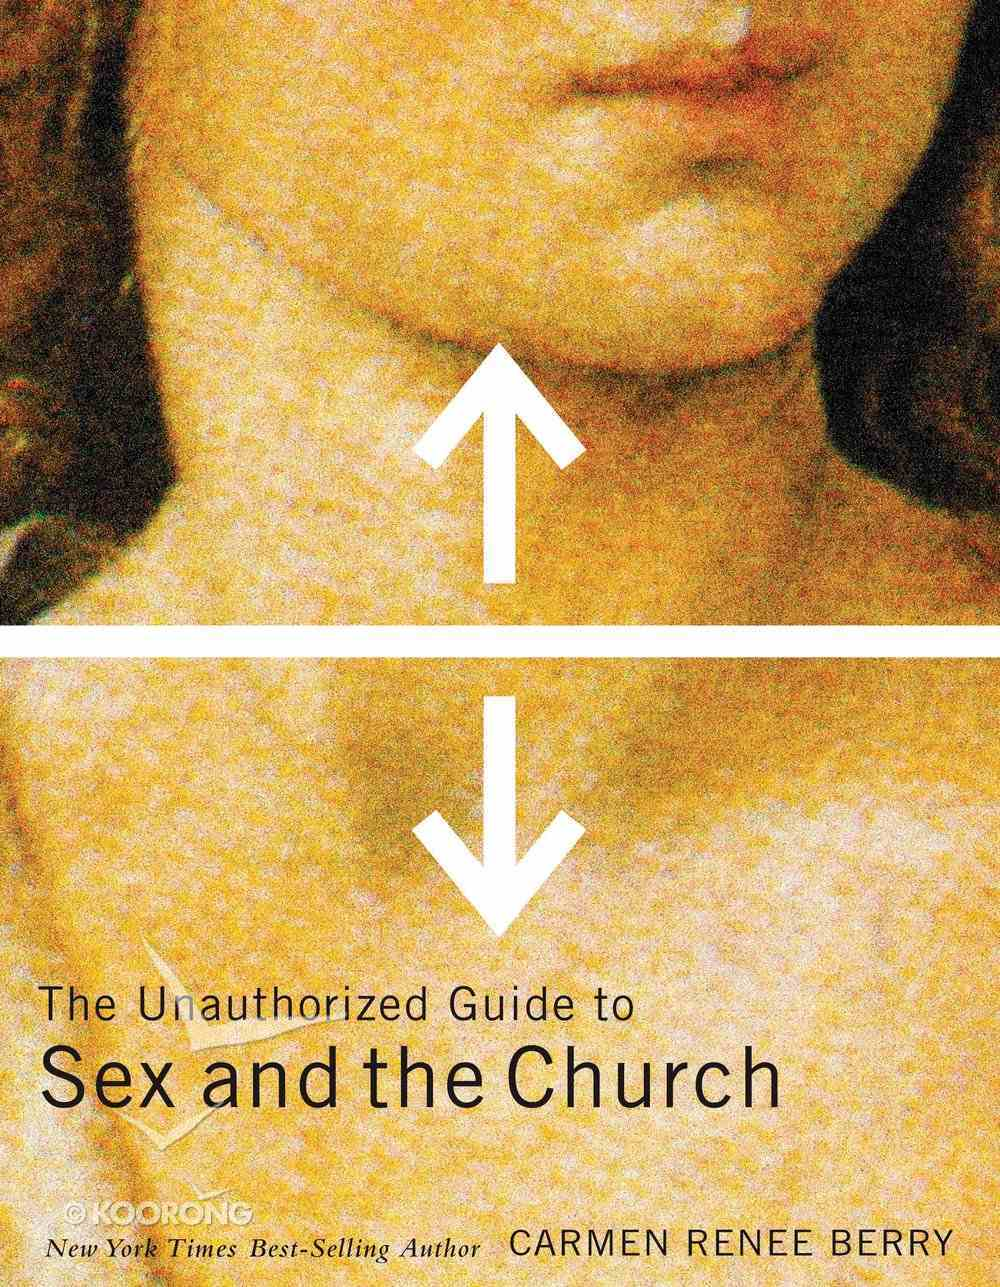 The Unauthorized Guide to Sex and the Church eBook